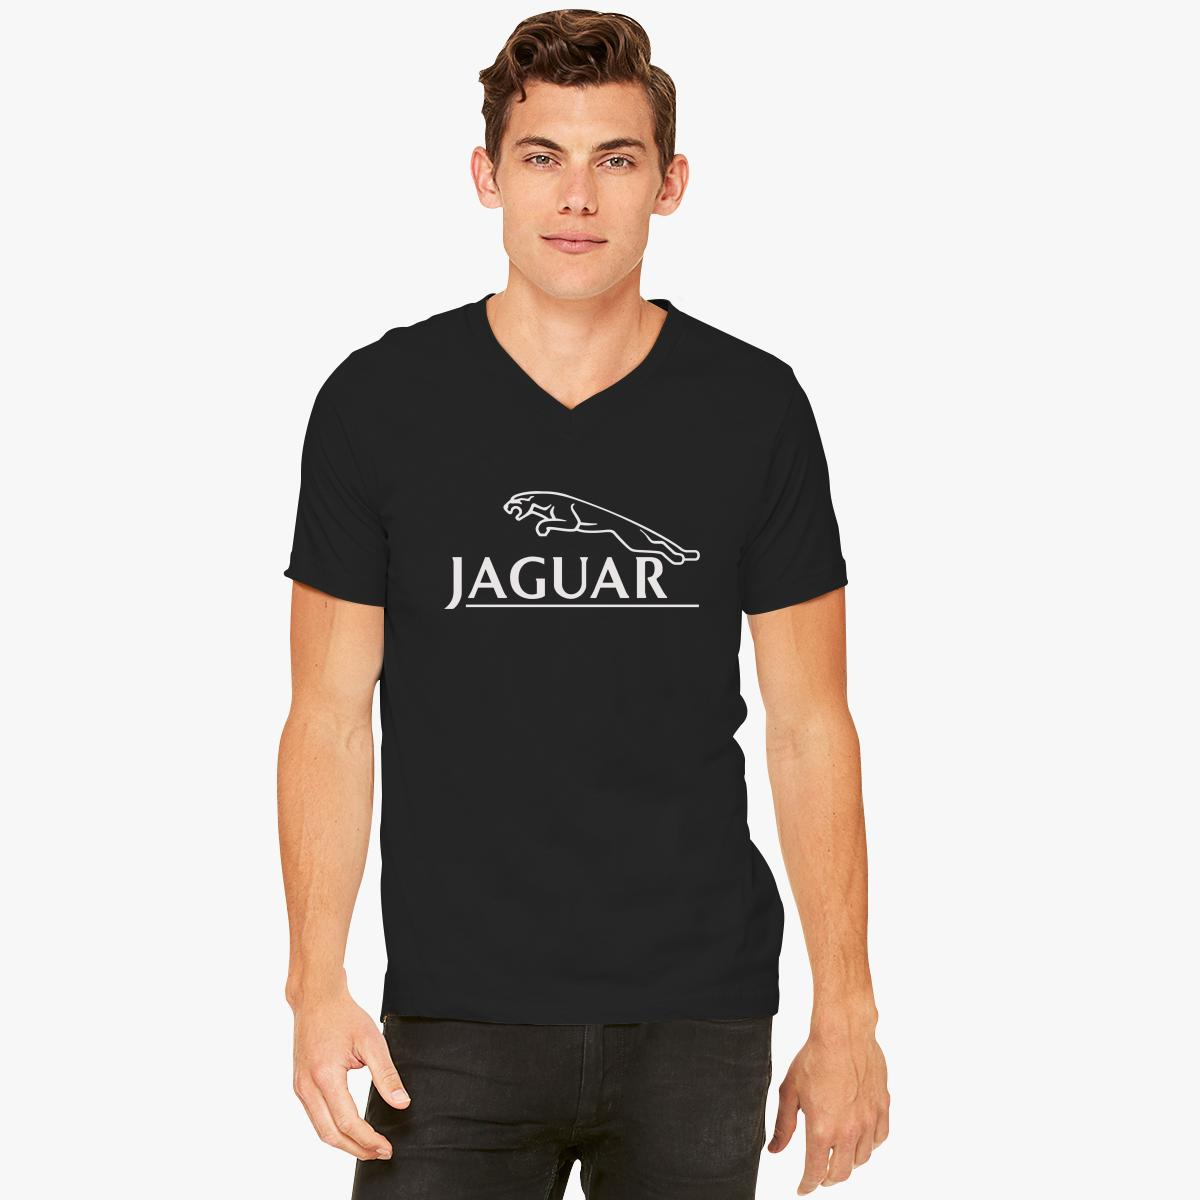 clothing products soulkr black once jaguar the women upon apparel tee womens a s